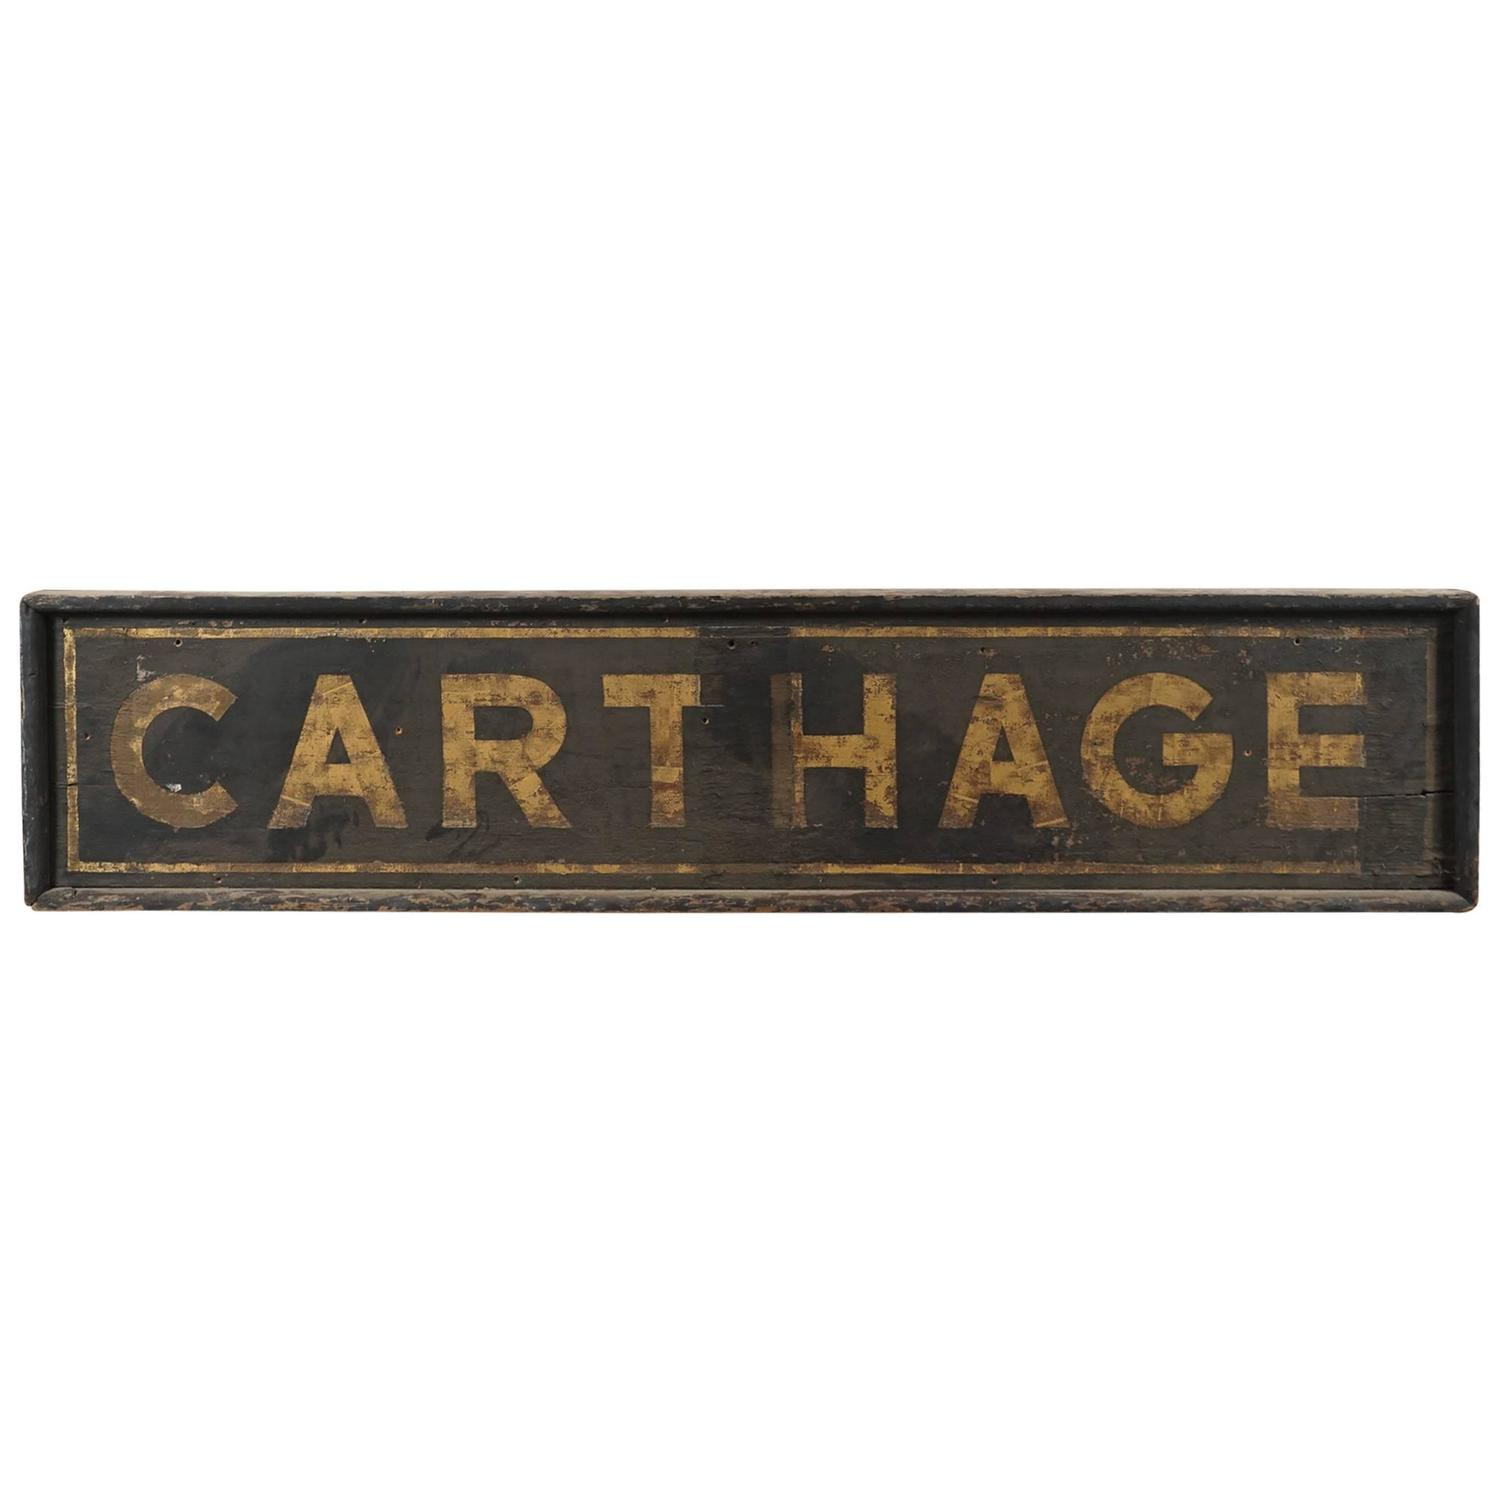 Rxr Depot Sign Carthage New York For Sale at 1stdibs